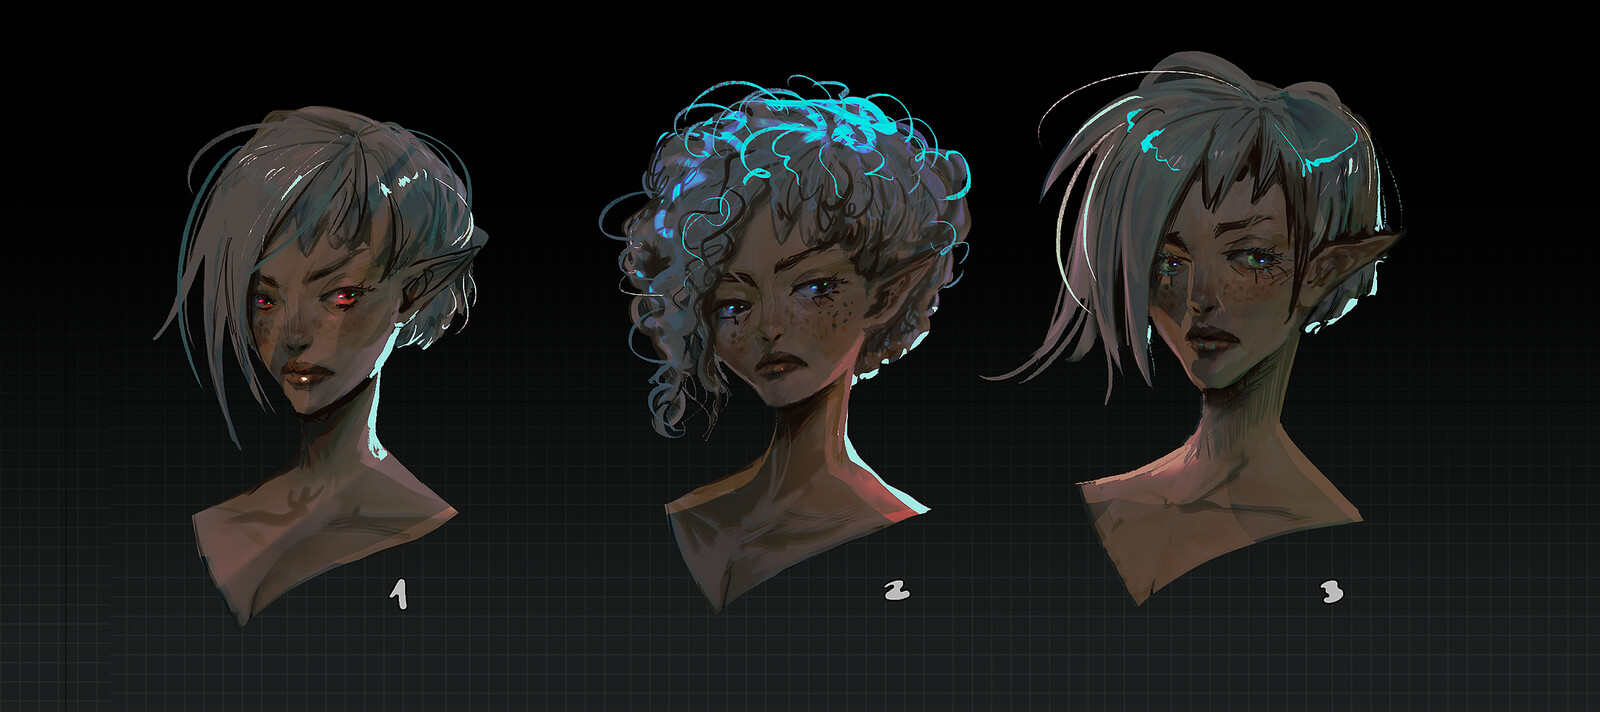 Face style exploration